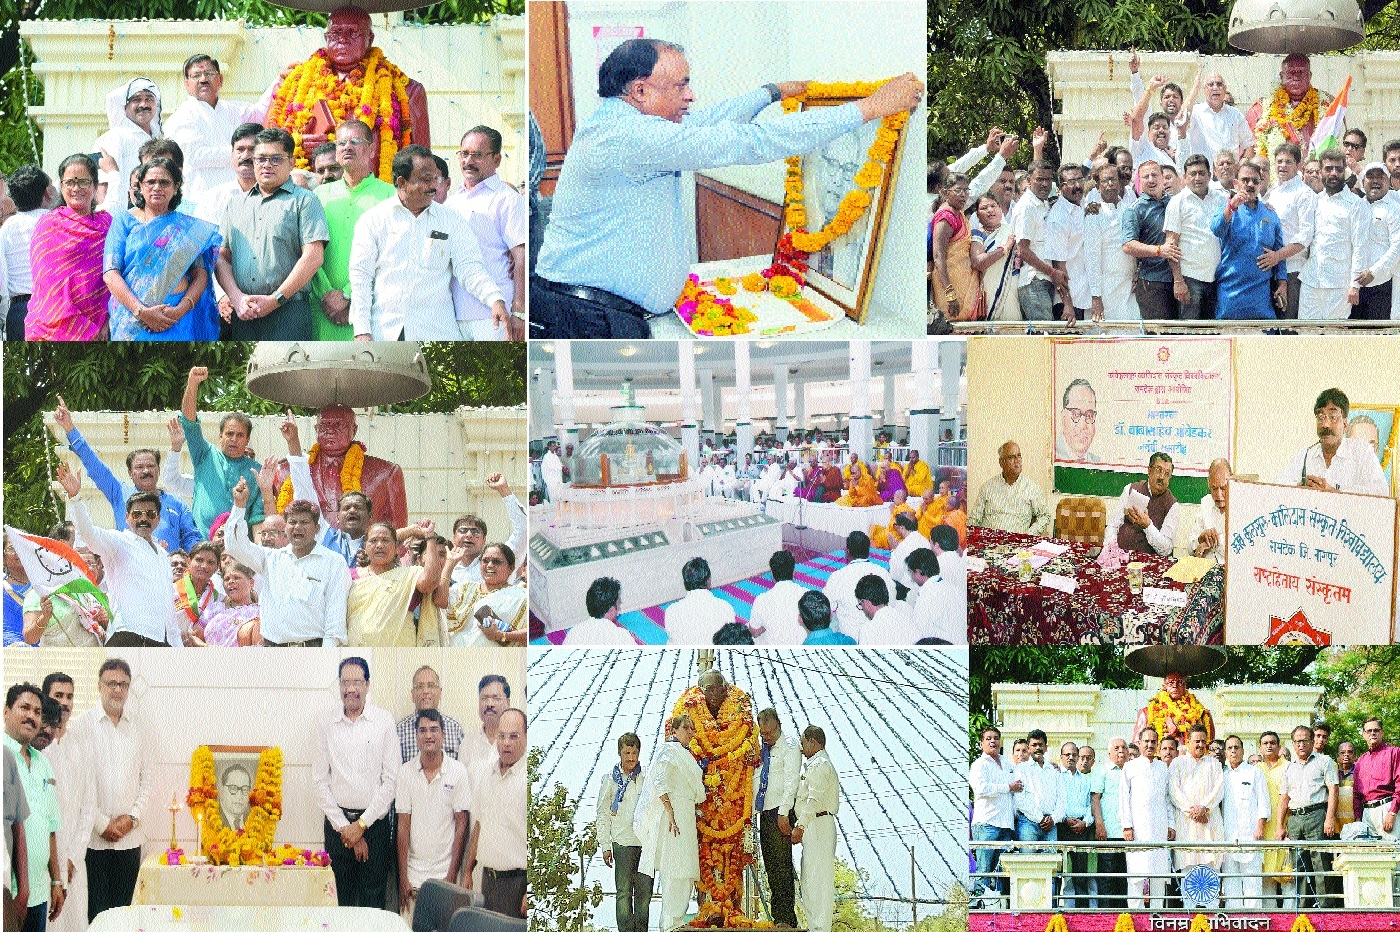 Nagpur joins nation in celebrating birth anniversary of Dr Ambedkar